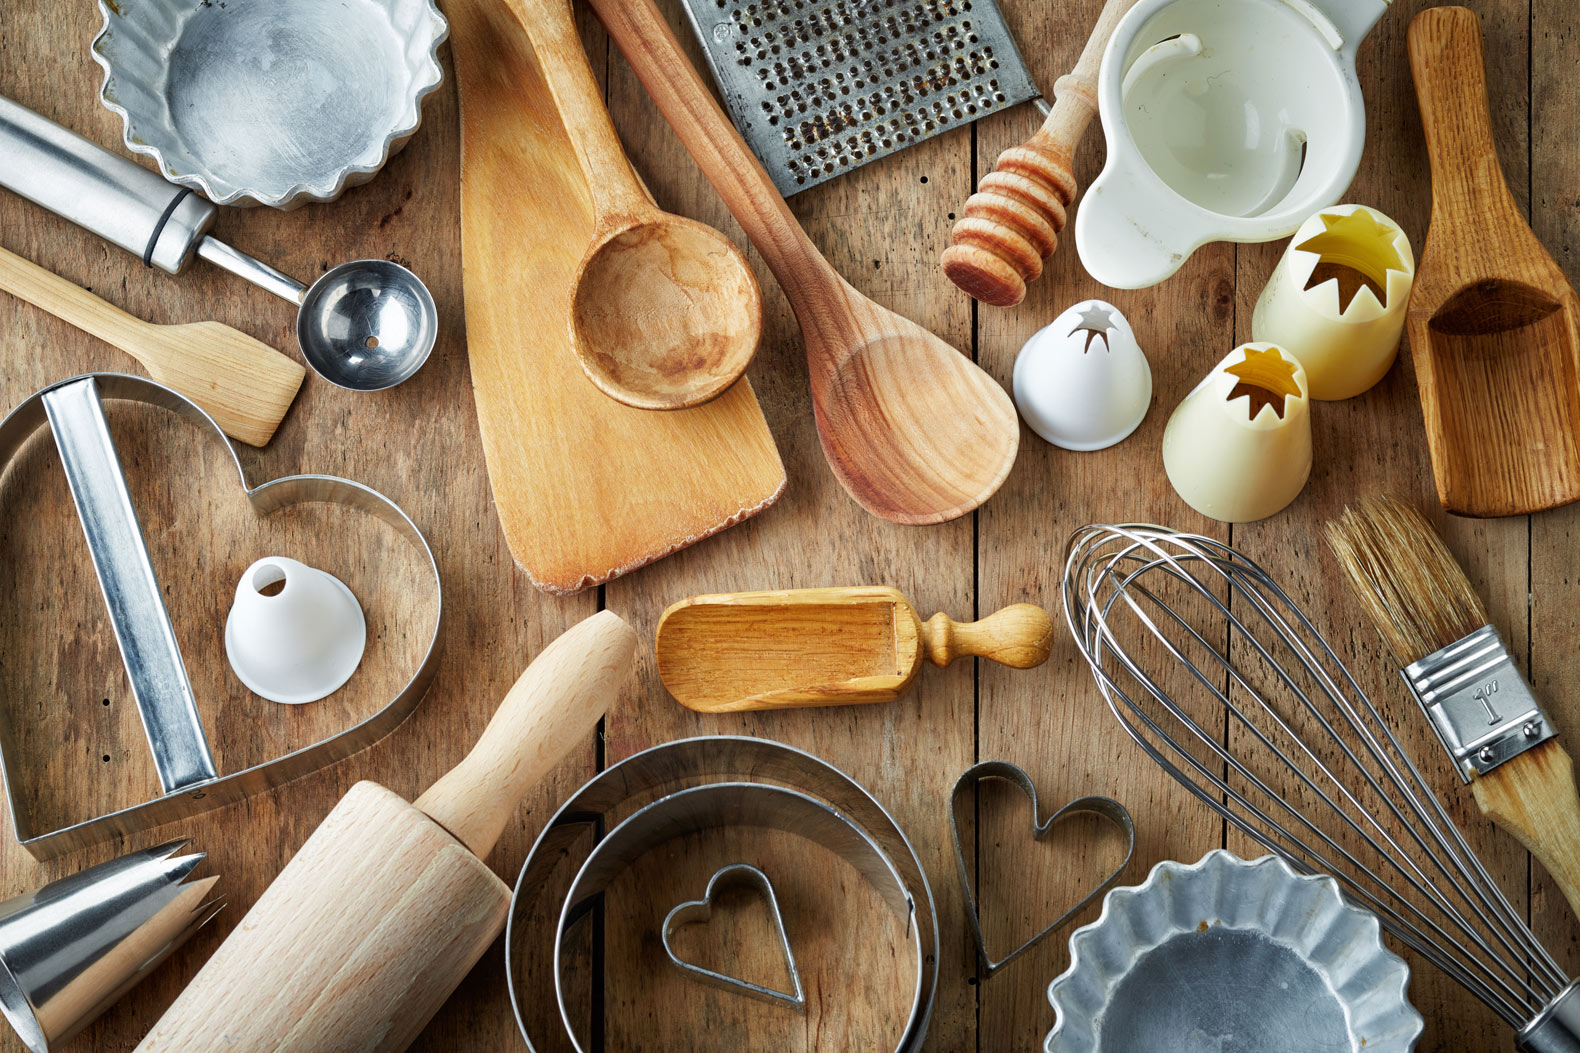 Essential old-fashioned tools and practices to make your kitchen more sustainable